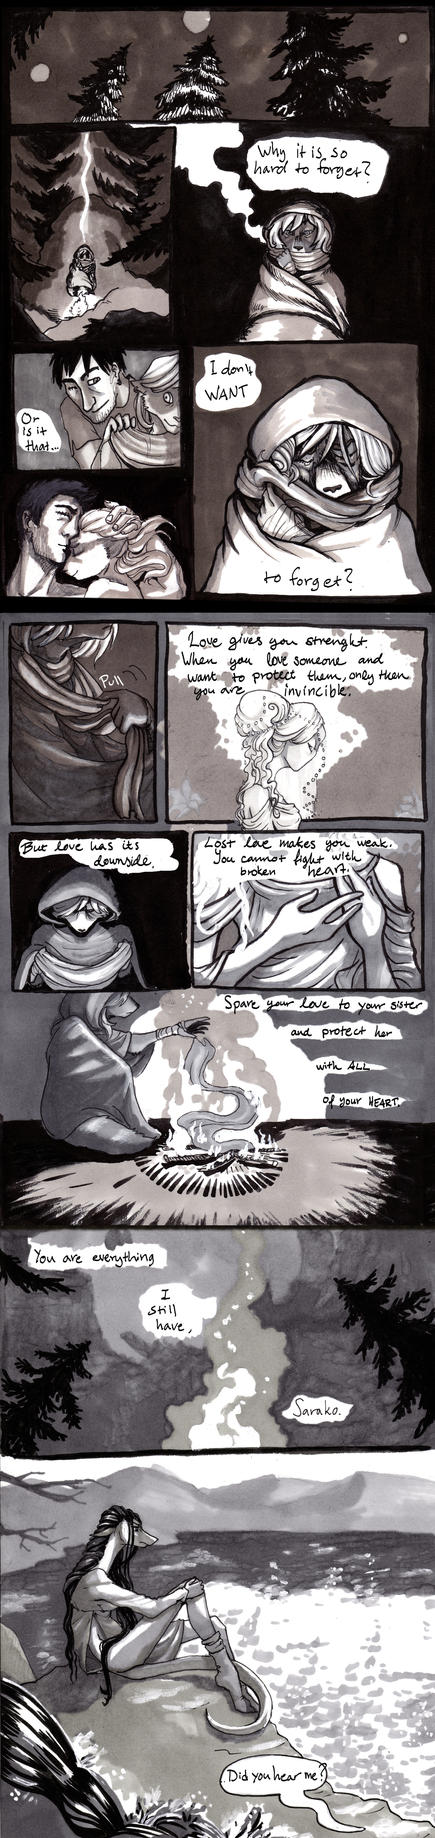 To my sister - Pages 16-18 by Tohmo